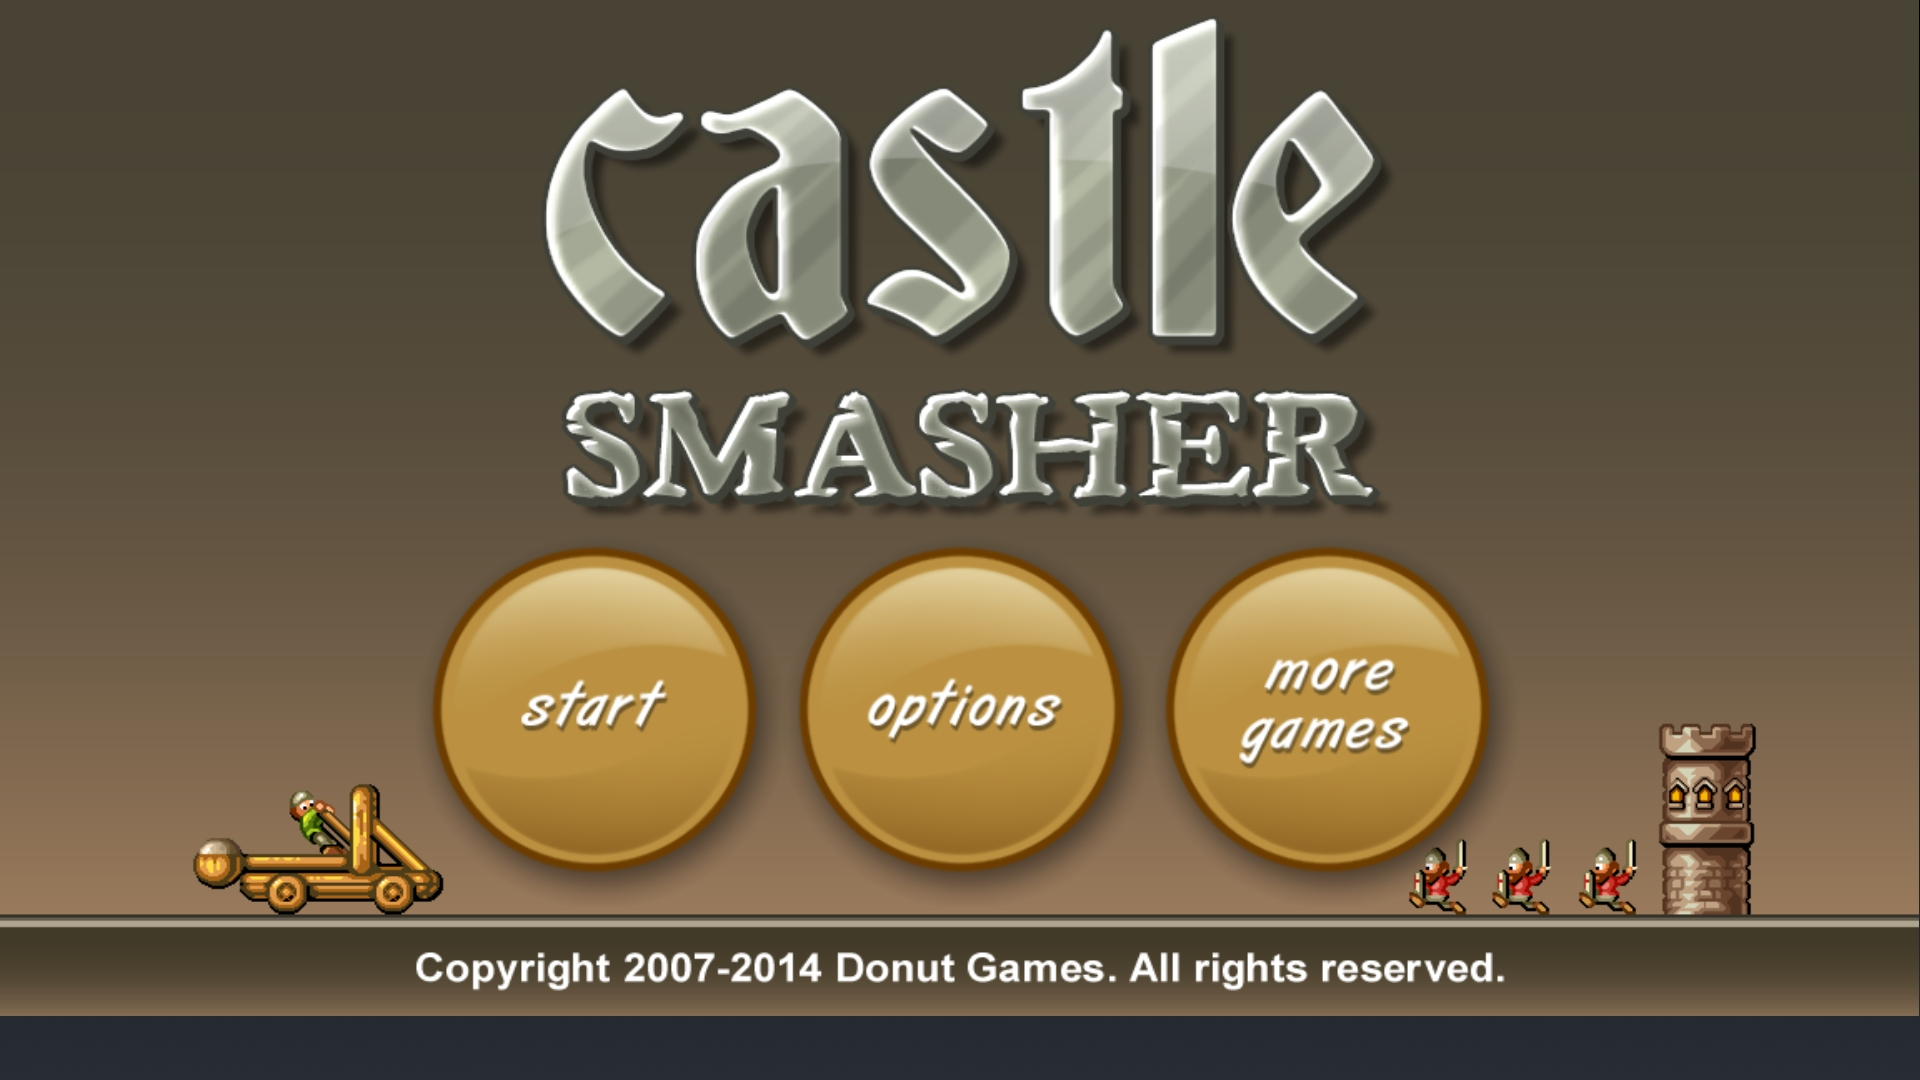 Castle Smasher: Challenges: 20 Town Assault 90 points